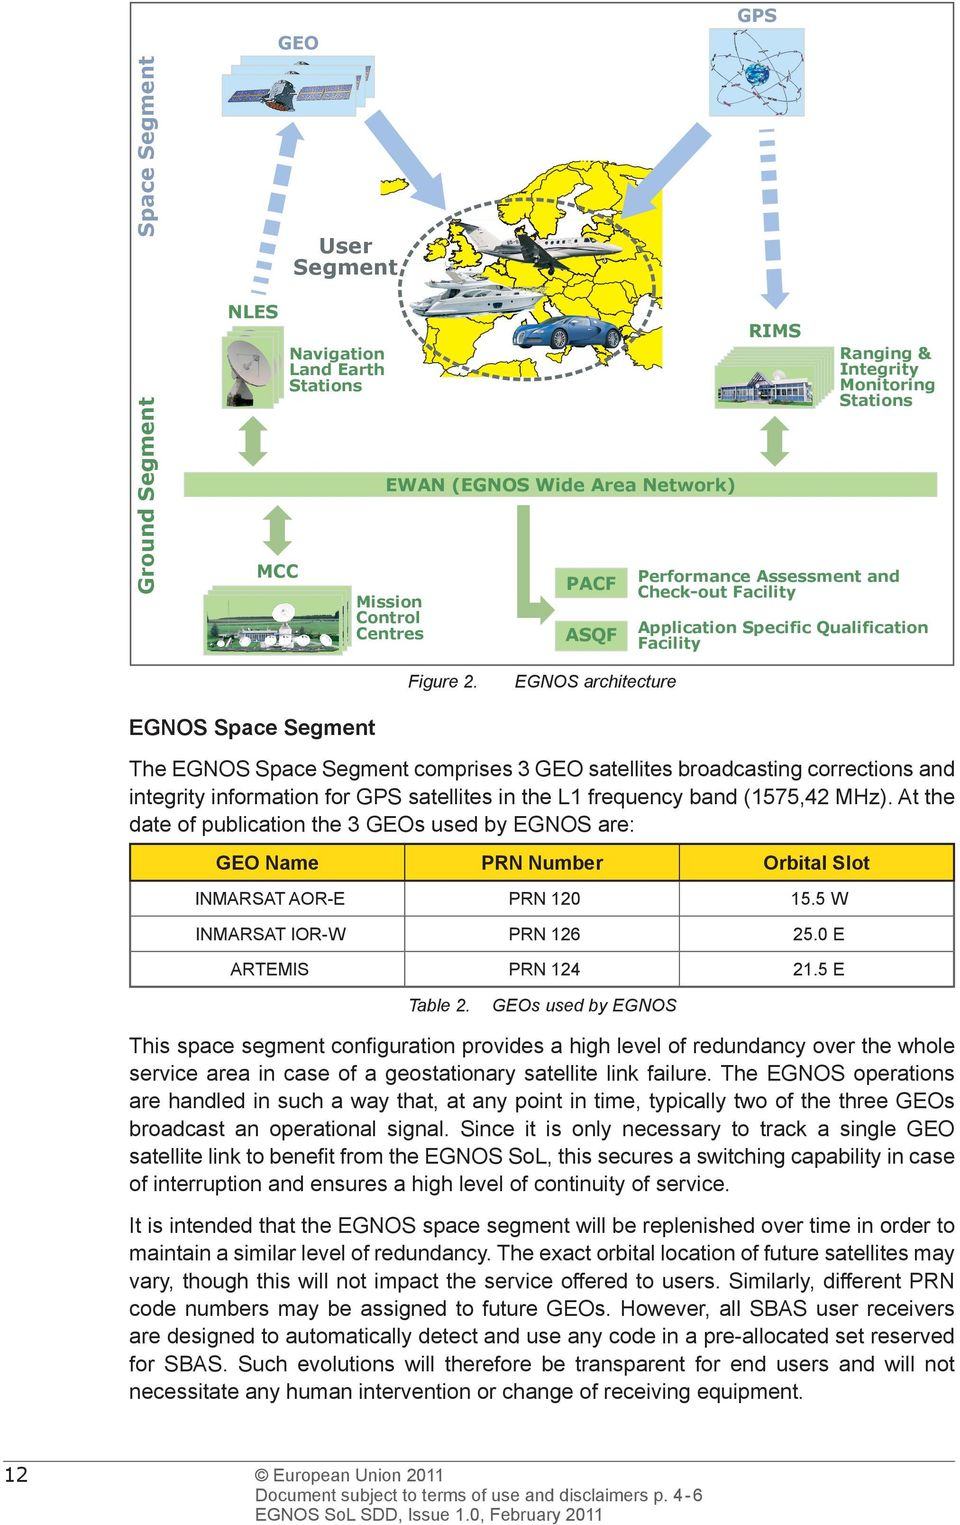 EGNOS architecture EGNOS Space Segment The EGNOS Space Segment comprises 3 GEO satellites broadcasting corrections and integrity information for GPS satellites in the L1 frequency band (1575,42 MHz).